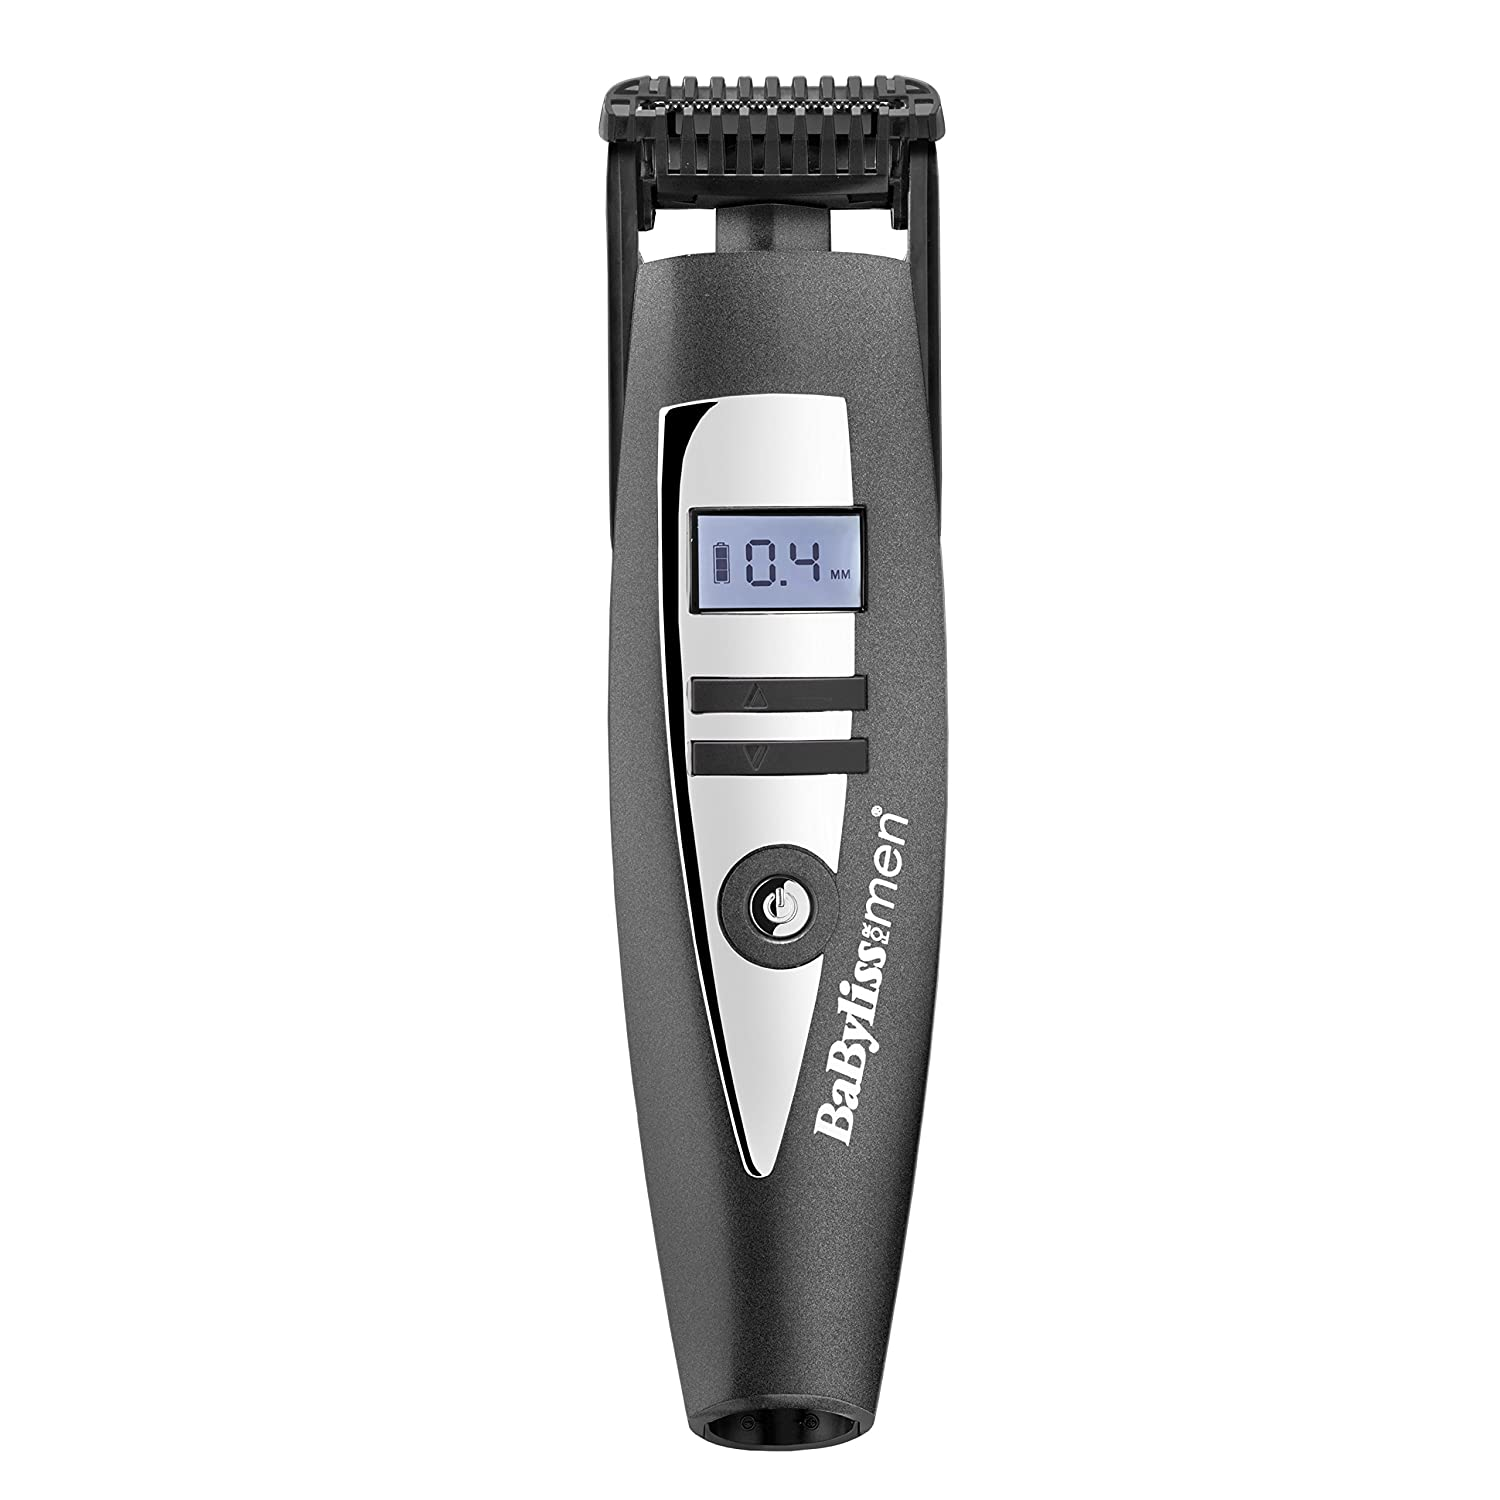 BaByliss for Men iStubble + Beard Trimmer The Conair Group Ltd 7895U